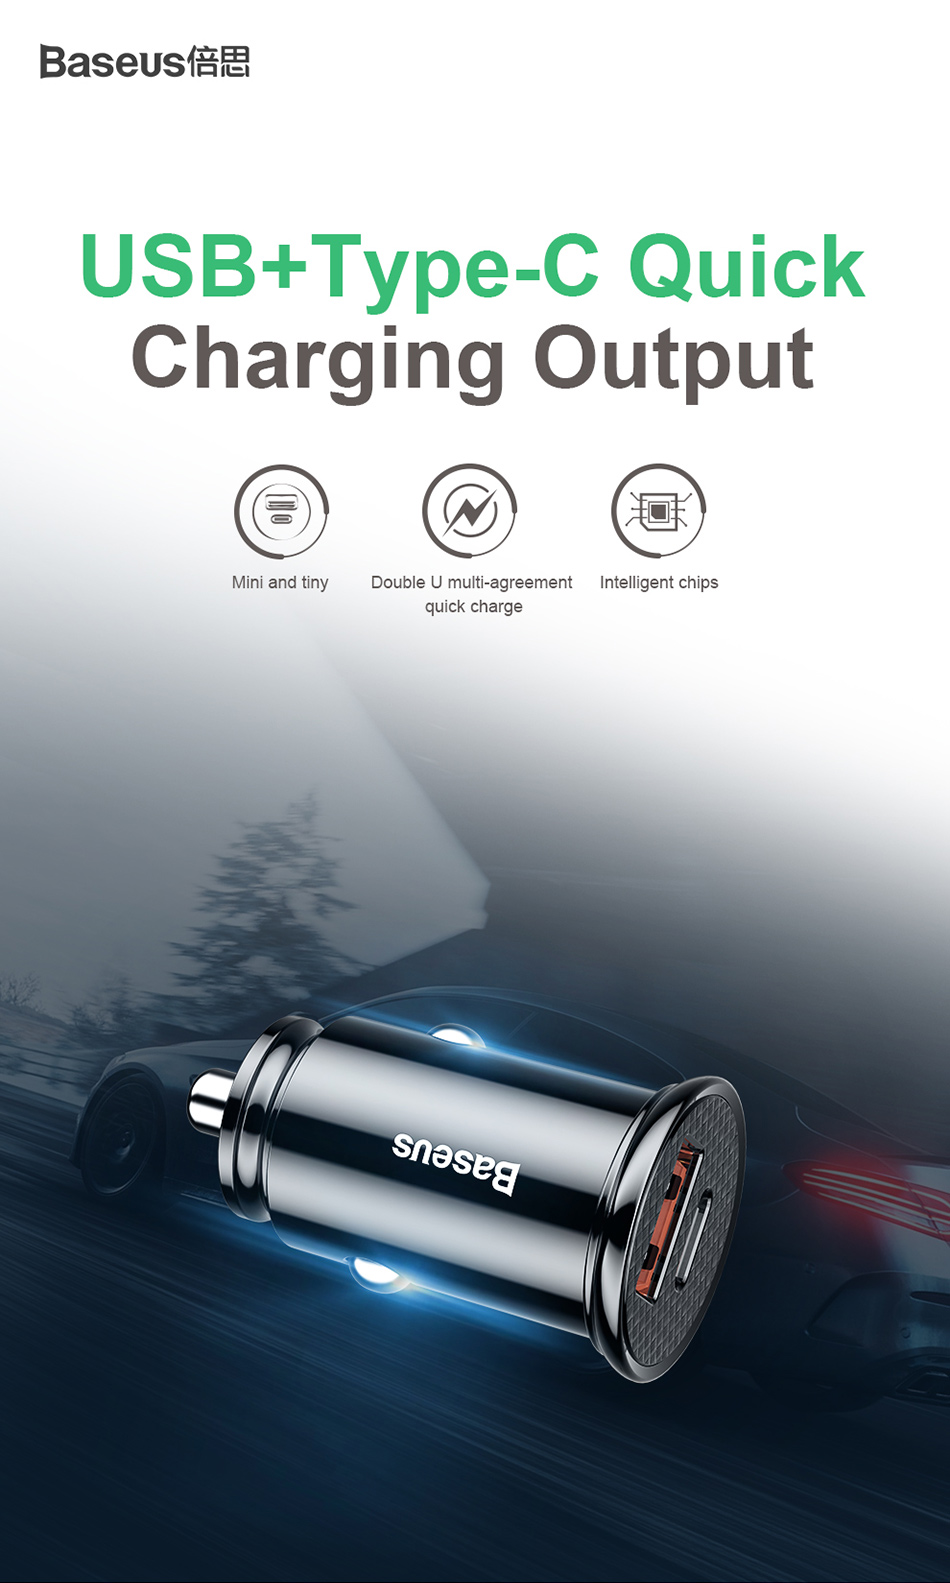 Baseus Quick Charge 4.0 3.0 USB Car Charger For Xiaomi mi 9 Huawei P30 Pro QC4.0 QC3.0 QC 5A Fast PD Car Charging Phone Charger-in Car Chargers from Cellphones & Telecommunications on Aliexpress.com | Alibaba Group 1